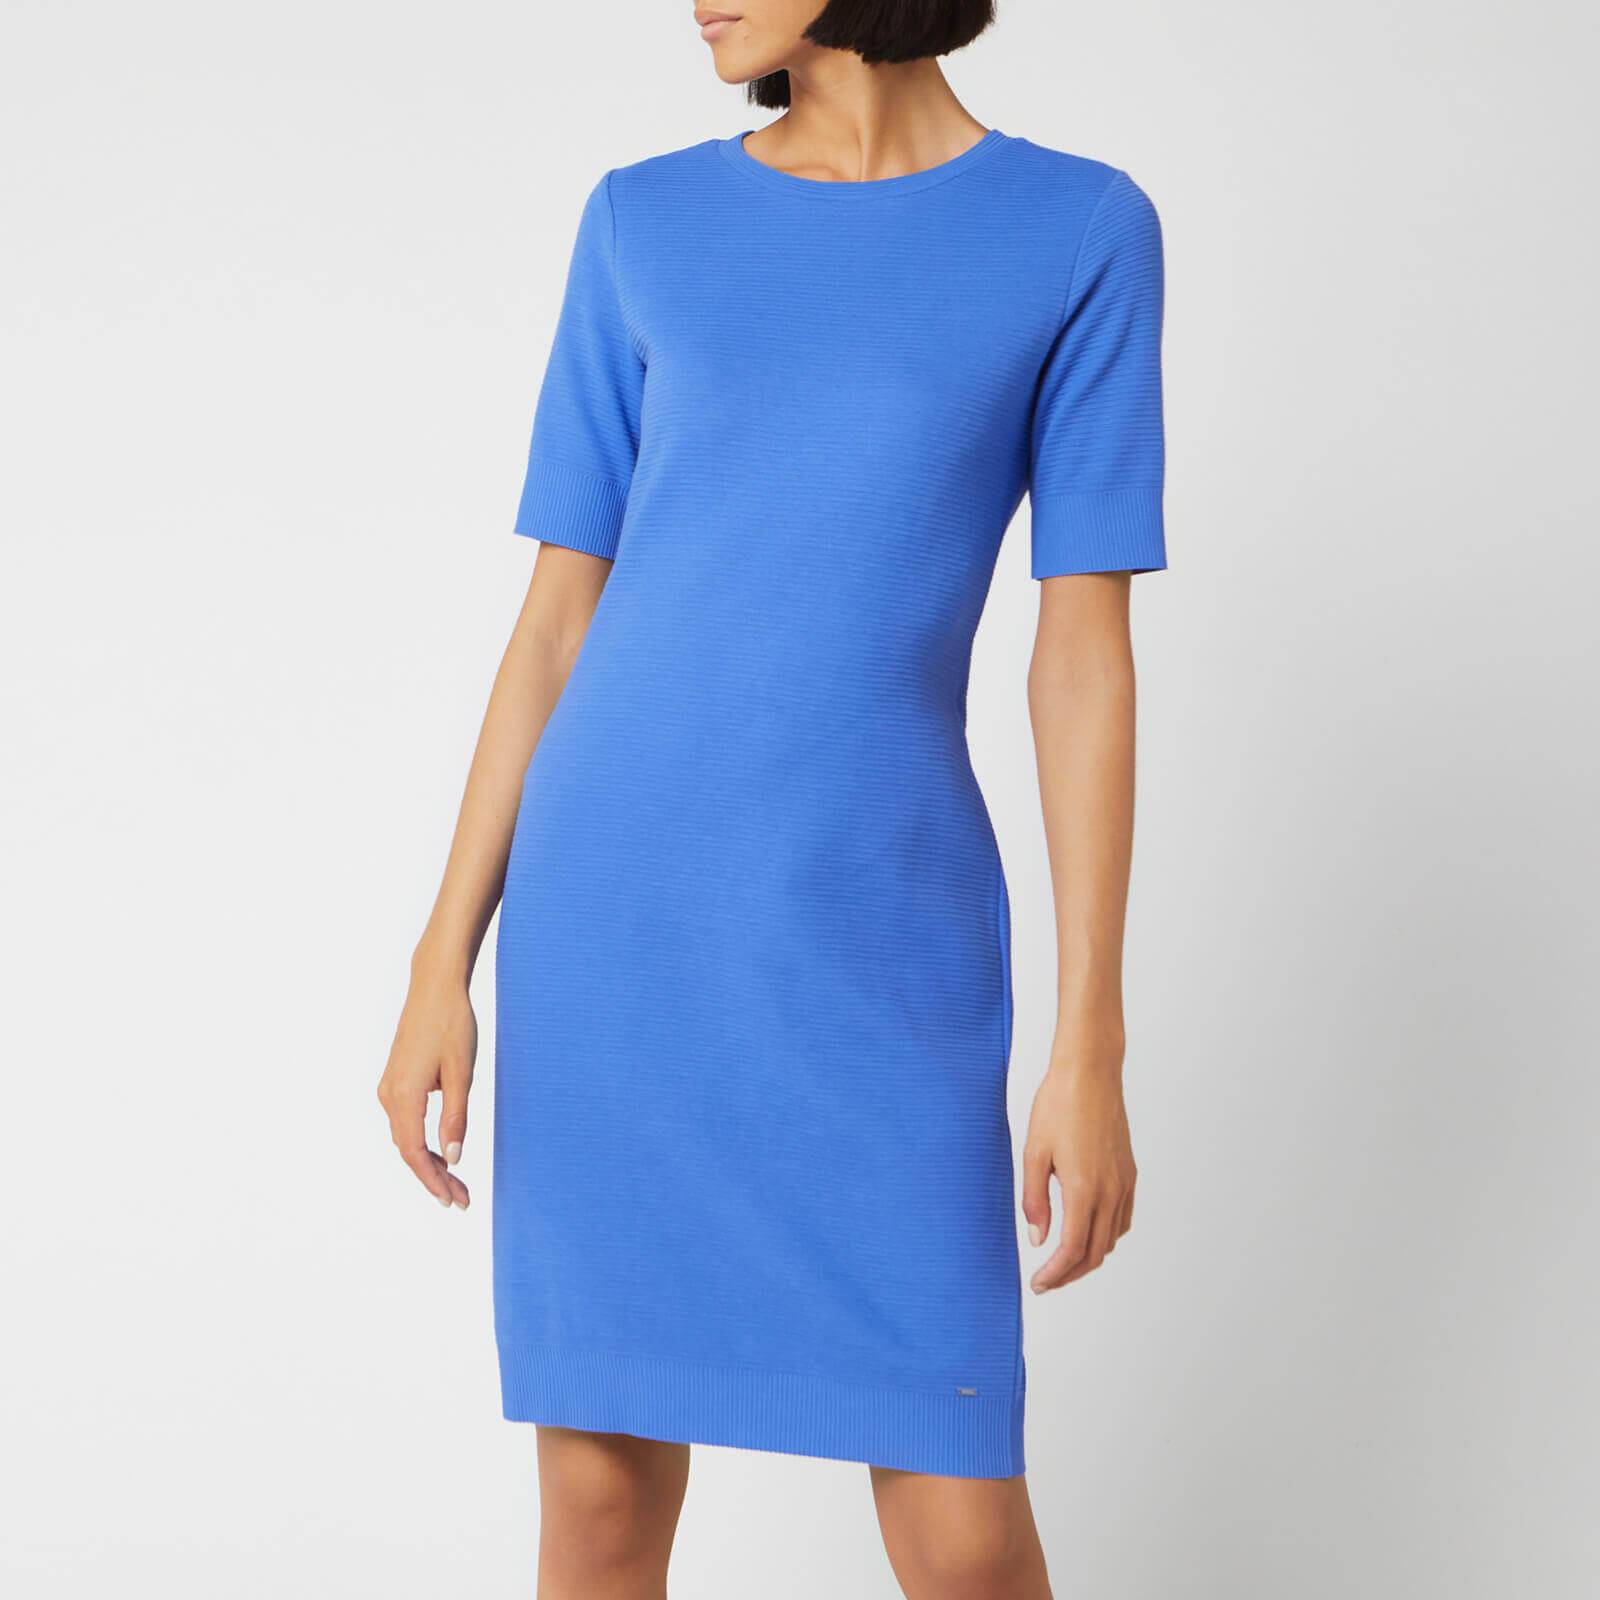 Boss Women's Dabutton Dress - Cornflower Blue - XS